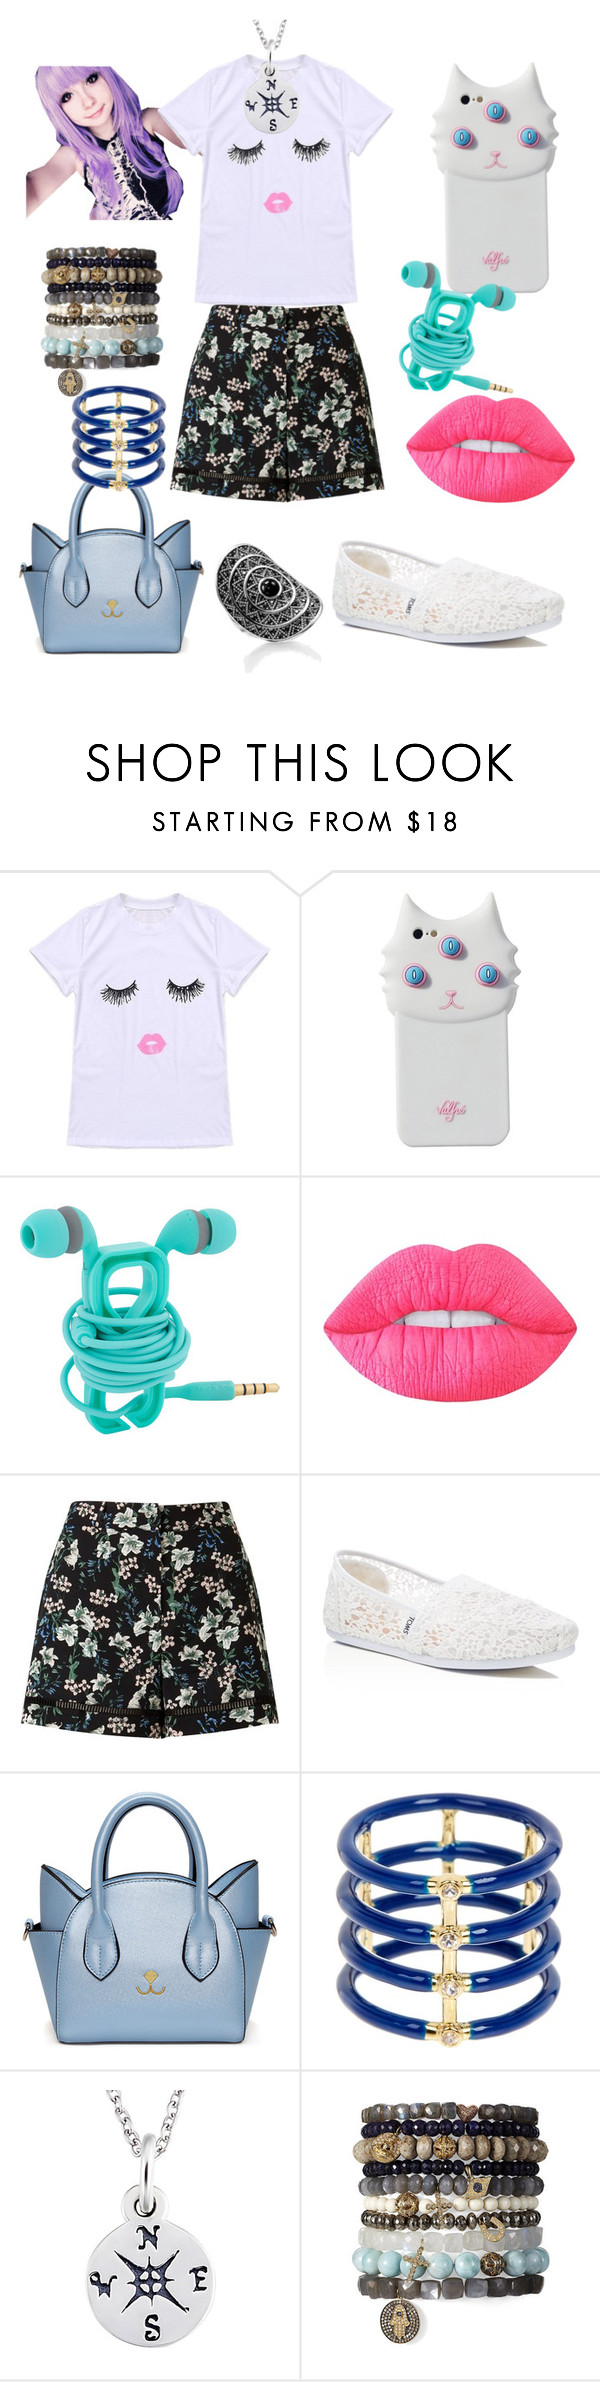 """""""Cute Collection"""" by louiseabunn ❤ liked on Polyvore featuring Valfré, Lime Crime, Miss Selfridge, TOMS, Elizabeth and James and Thomas Sabo"""